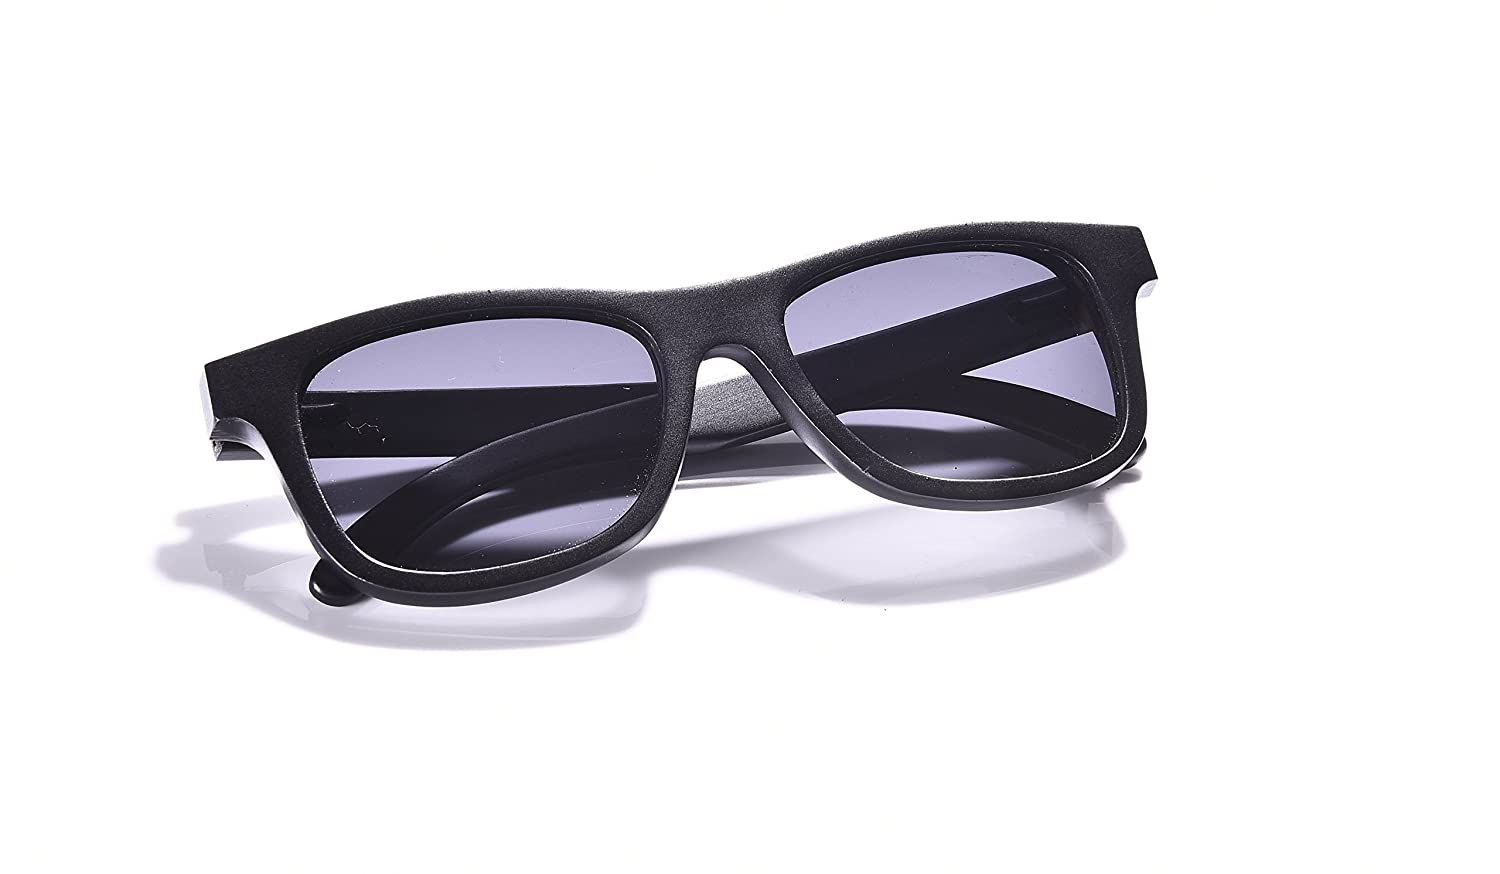 Bamboo Wood Sunglasses in Wayfarer Style with Polarized Lens for Men and Women